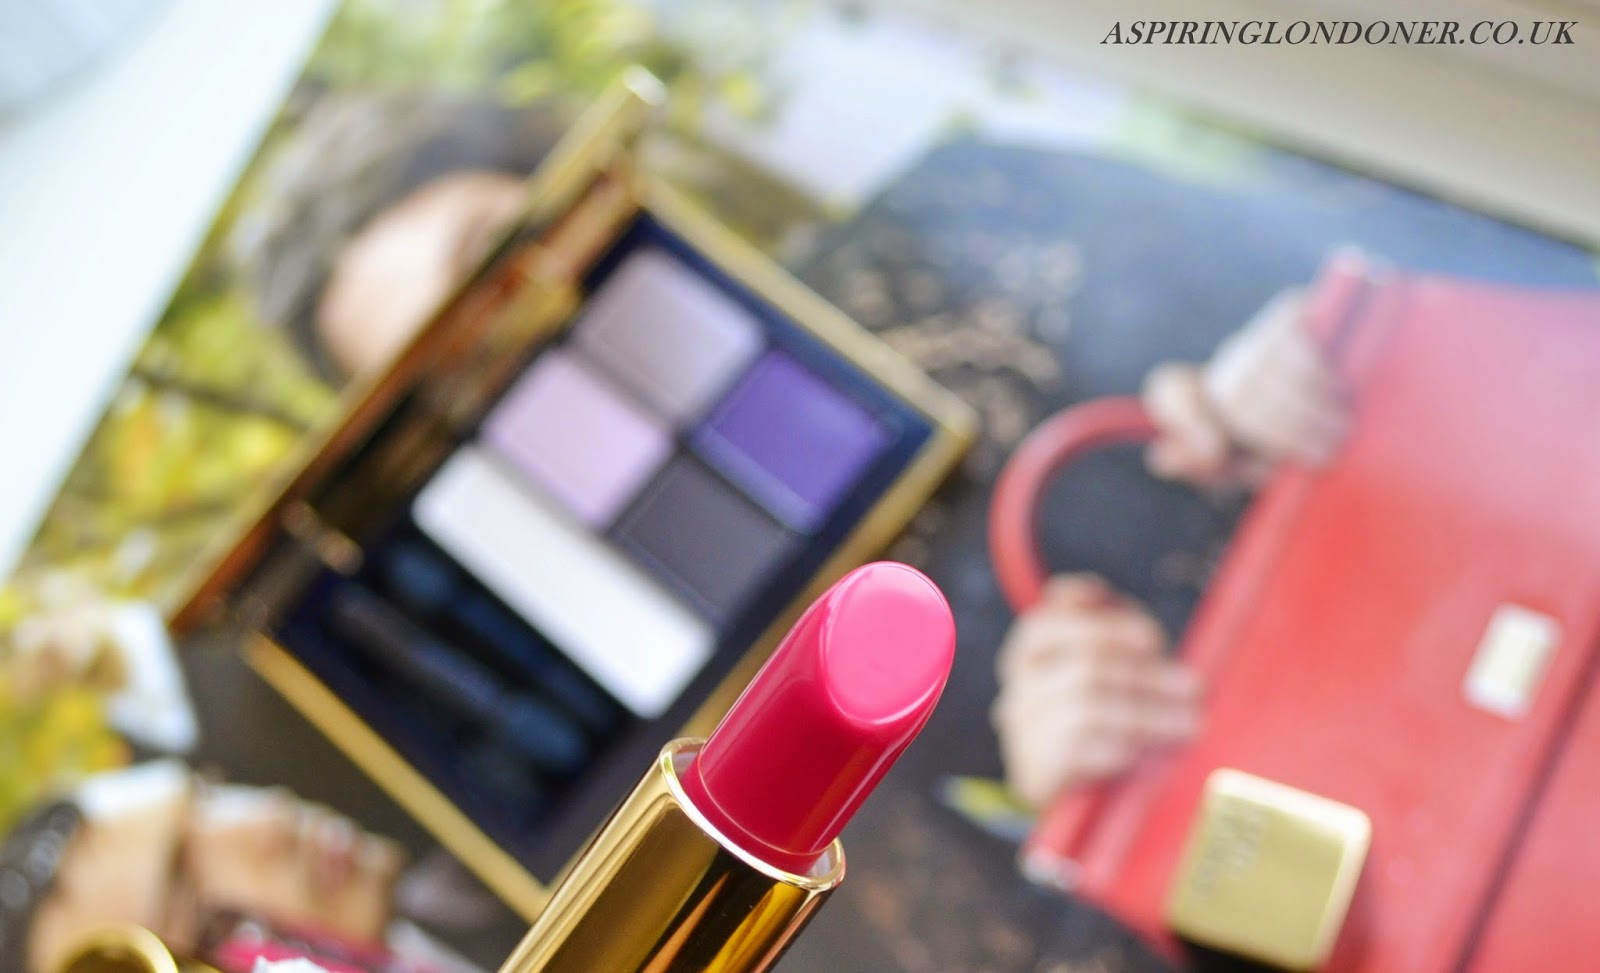 Estee Lauder Pure Color Envy Sculpting Lipstick in Tumultuous Pink - Aspiring Londoner